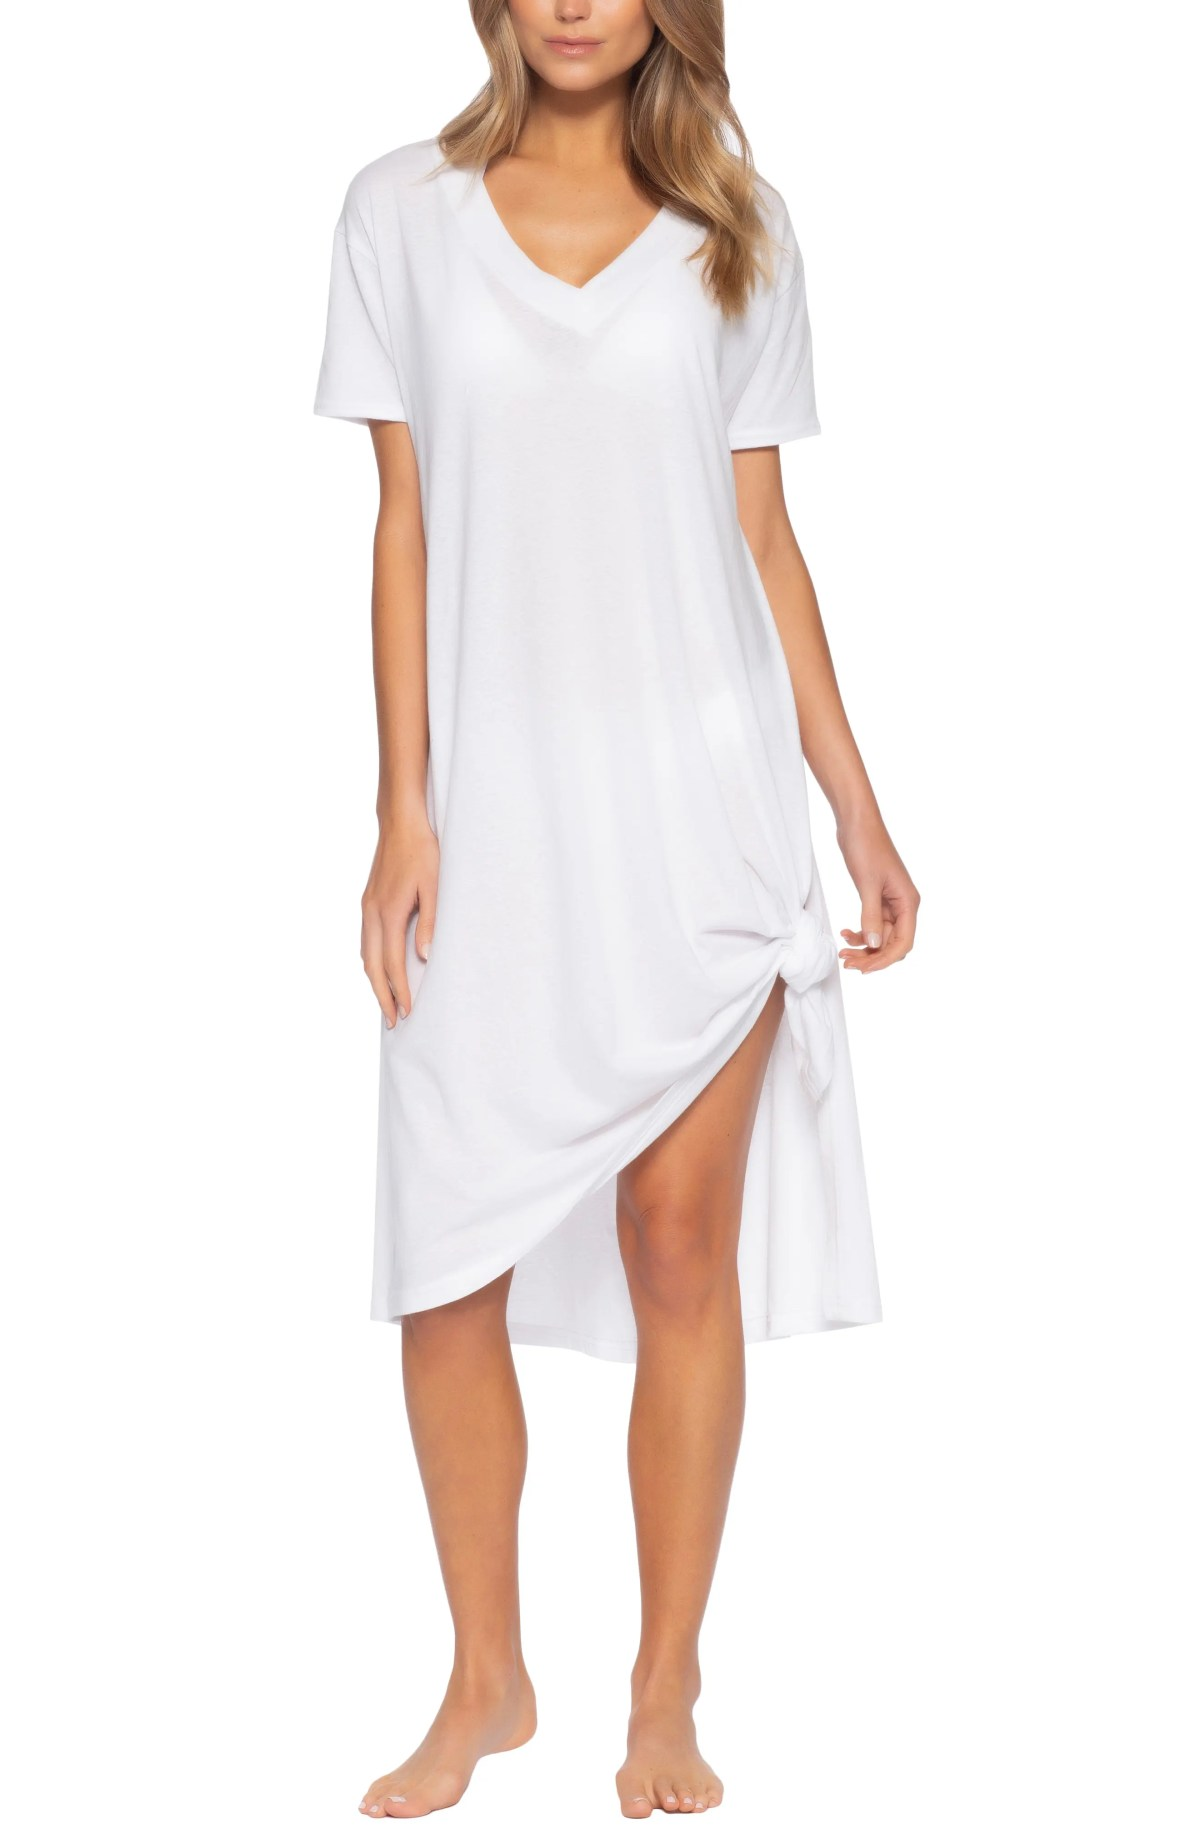 BECCA Beach Date Cover-Up T-Shirt Dress, Main, color, WHITE